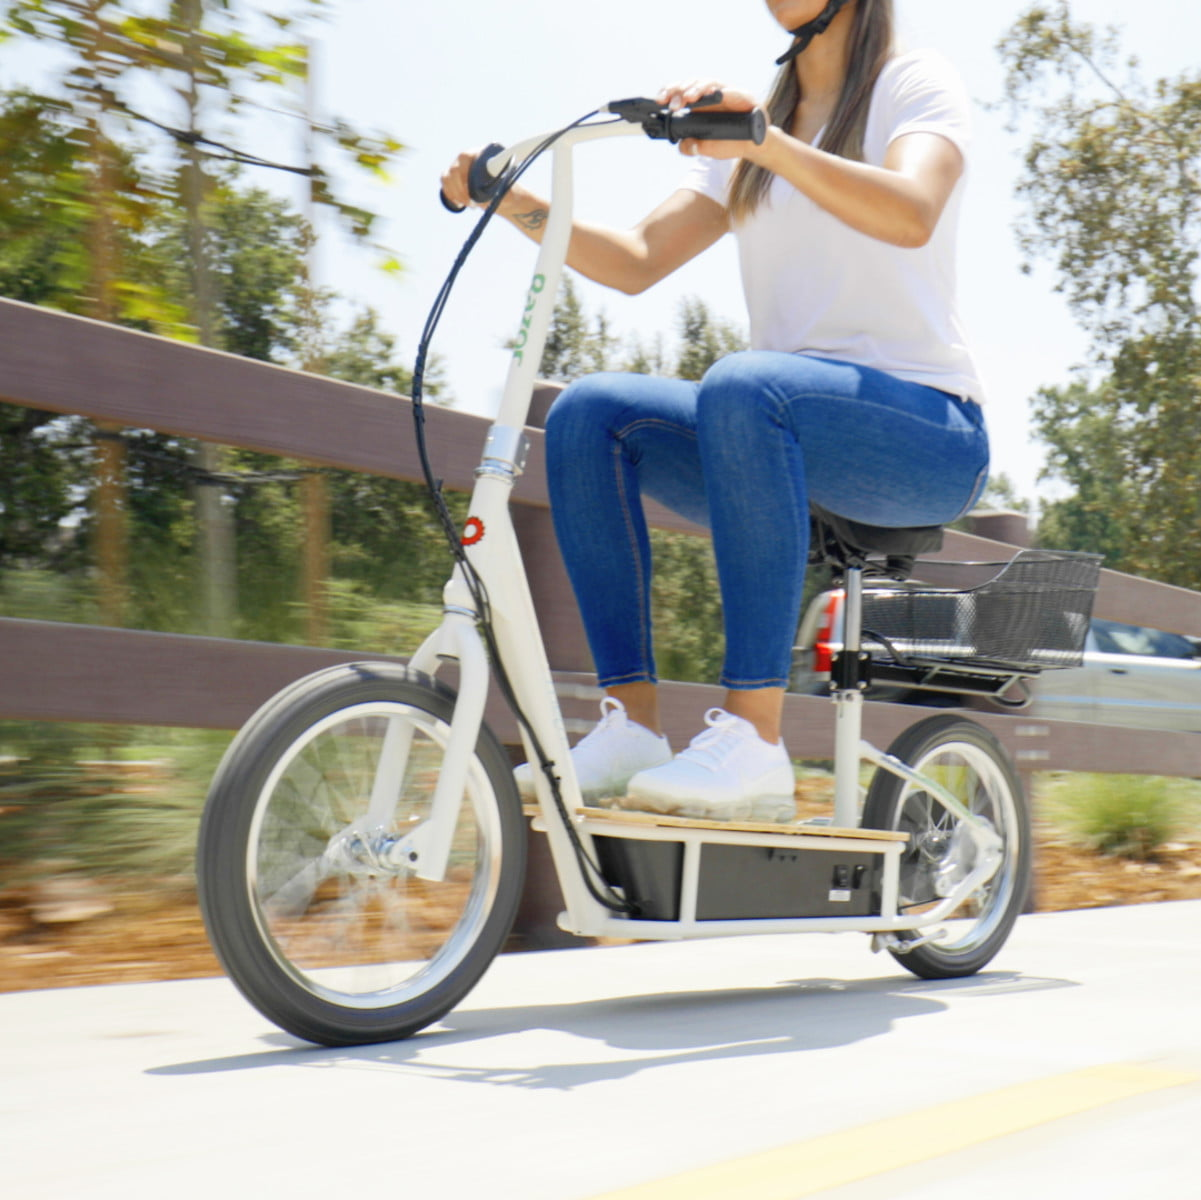 walmart slashes prices on electric bikes and razor e scooters for labor day 36 volt ecosmart metro scooter 2